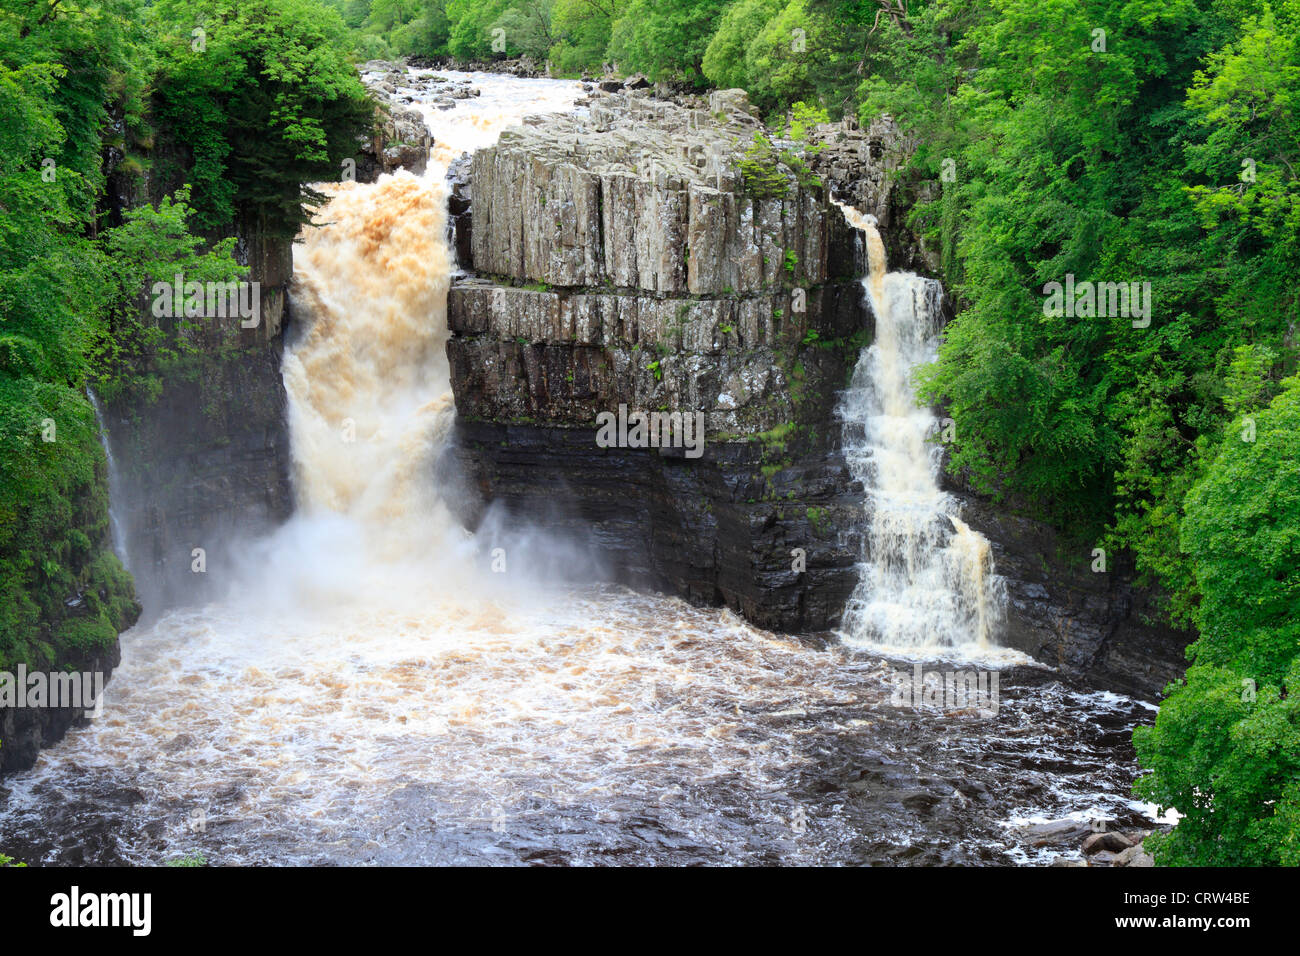 High Force waterfall after heavy rain, River Tees near Middleton in Teesdale, County Durham, England, UK. - Stock Image